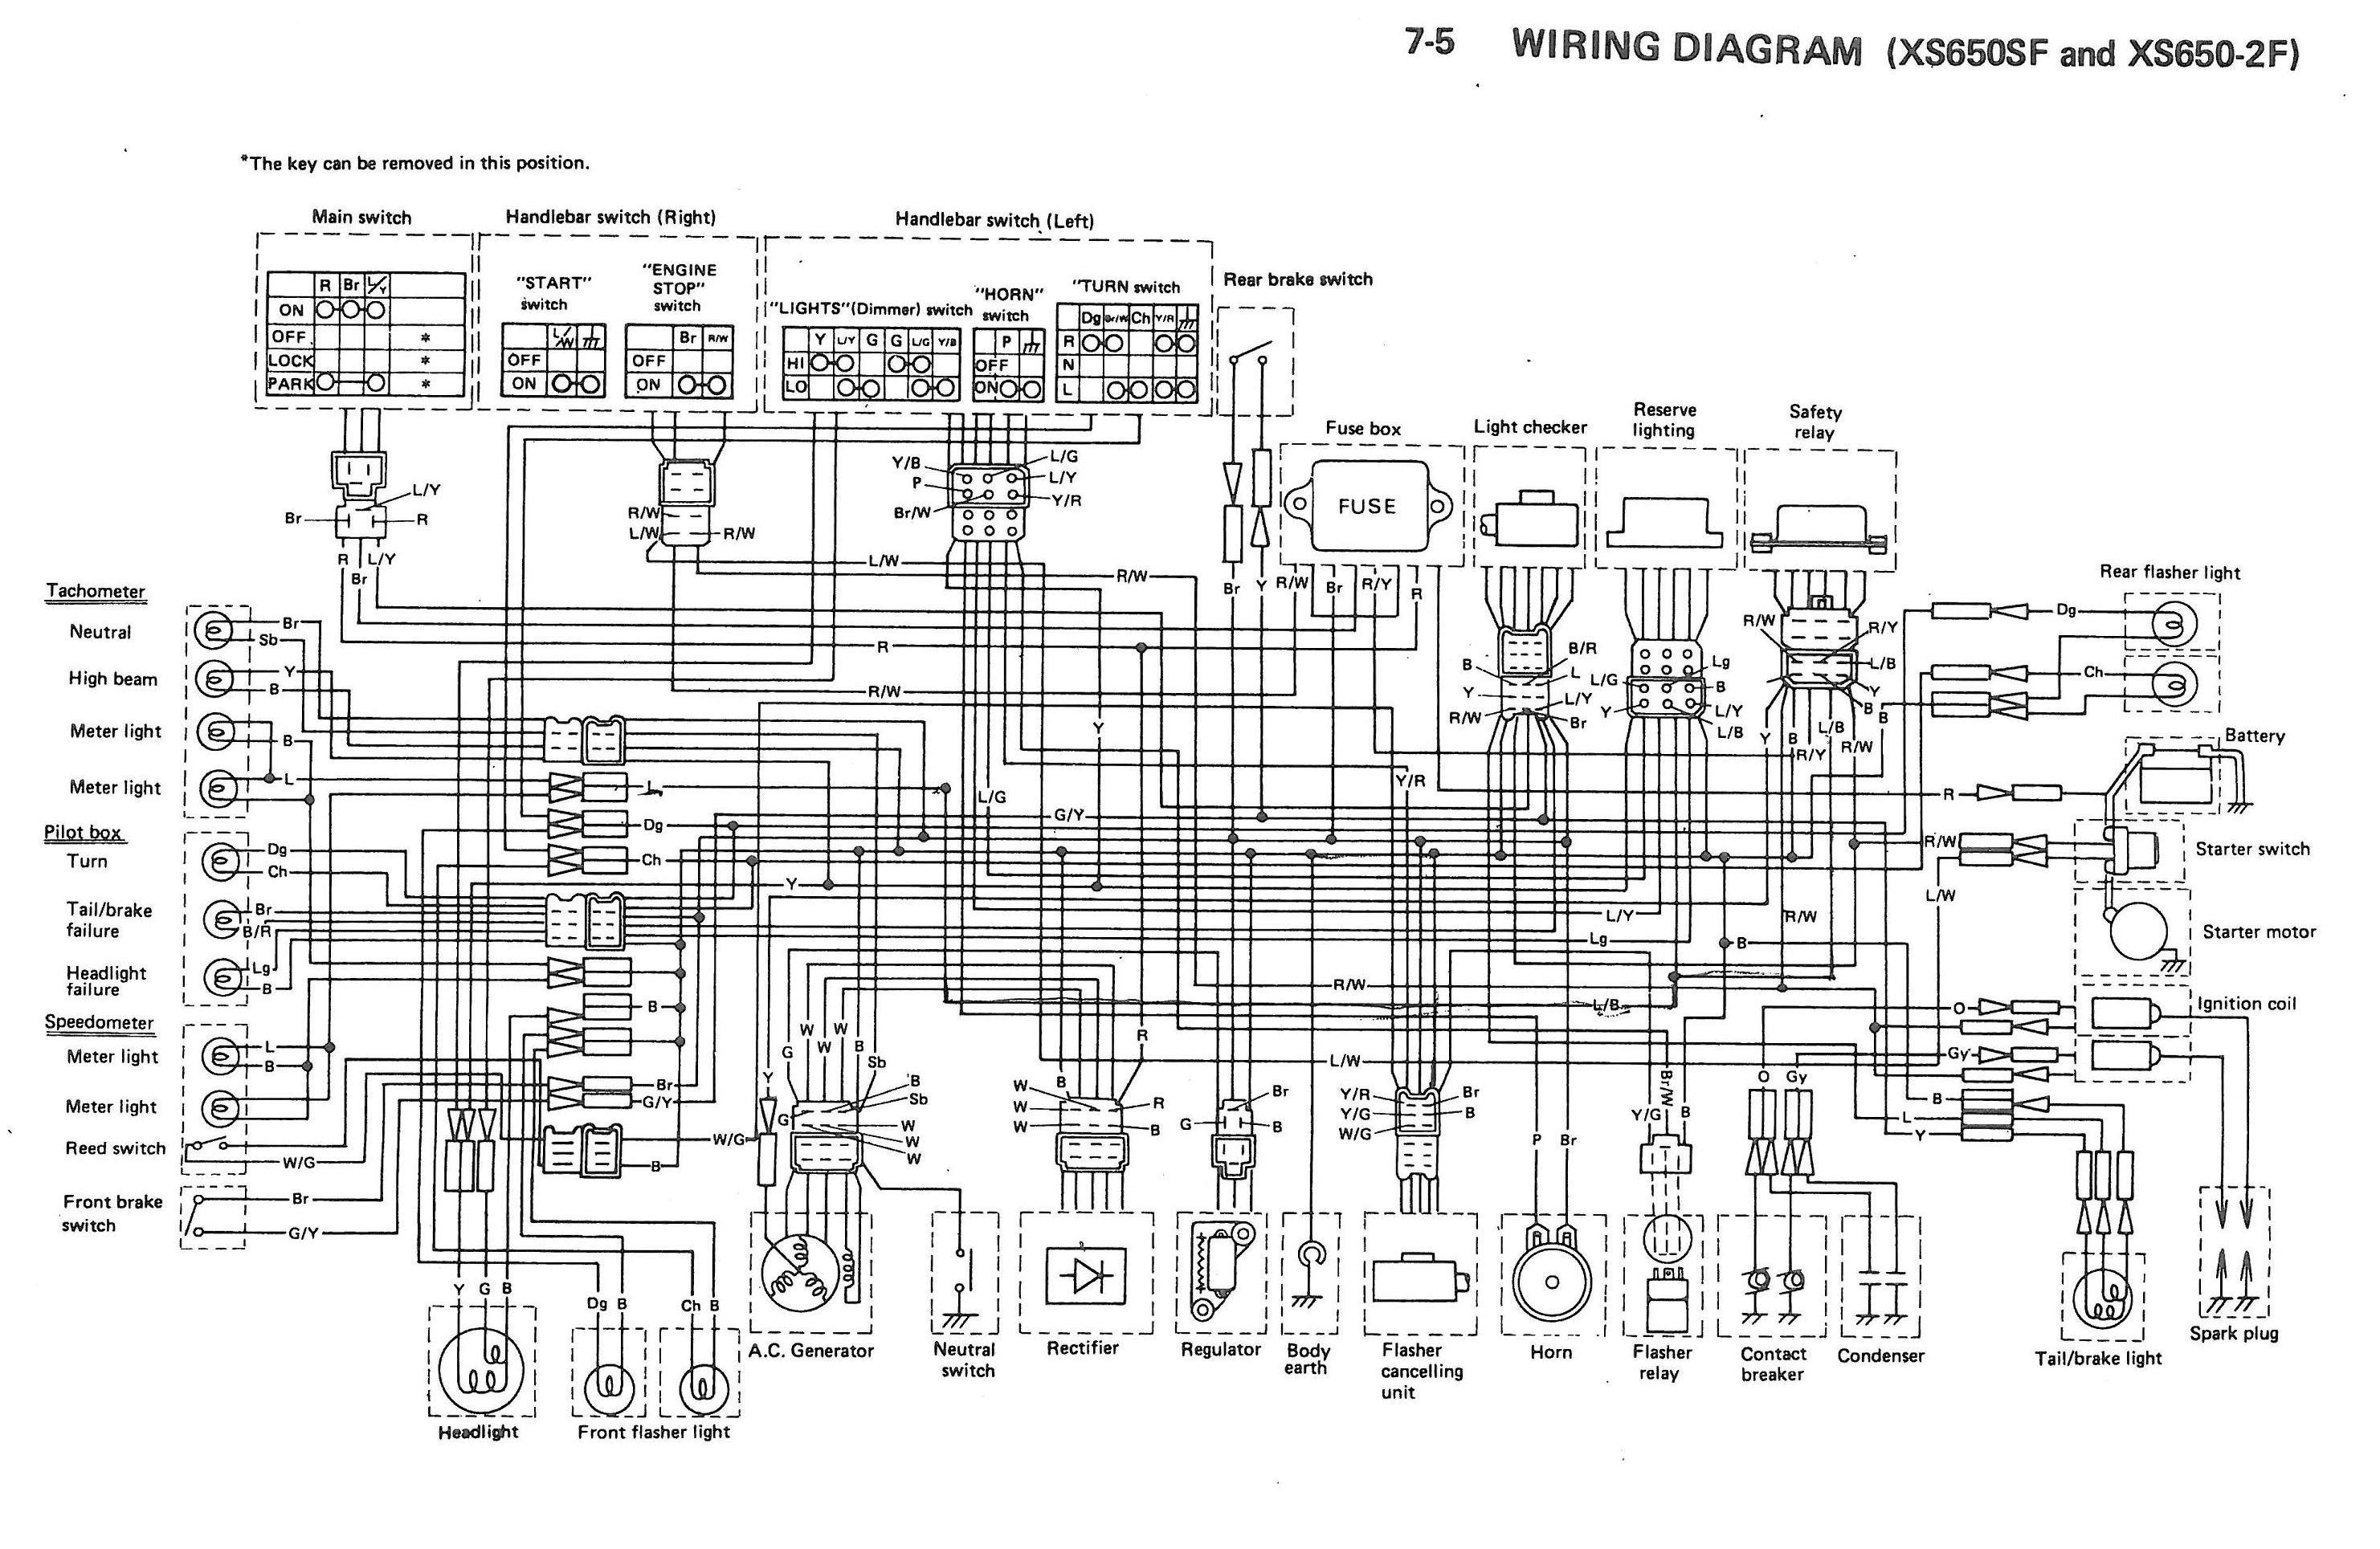 Xs650 Wiring Schematic Engine | Avecdd Unix on series and parallel circuits diagrams, lighting diagrams, friendship bracelet diagrams, hvac diagrams, troubleshooting diagrams, internet of things diagrams, led circuit diagrams, battery diagrams, switch diagrams, honda motorcycle repair diagrams, pinout diagrams, engine diagrams, smart car diagrams, transformer diagrams, motor diagrams, electronic circuit diagrams, gmc fuse box diagrams, sincgars radio configurations diagrams, electrical diagrams,